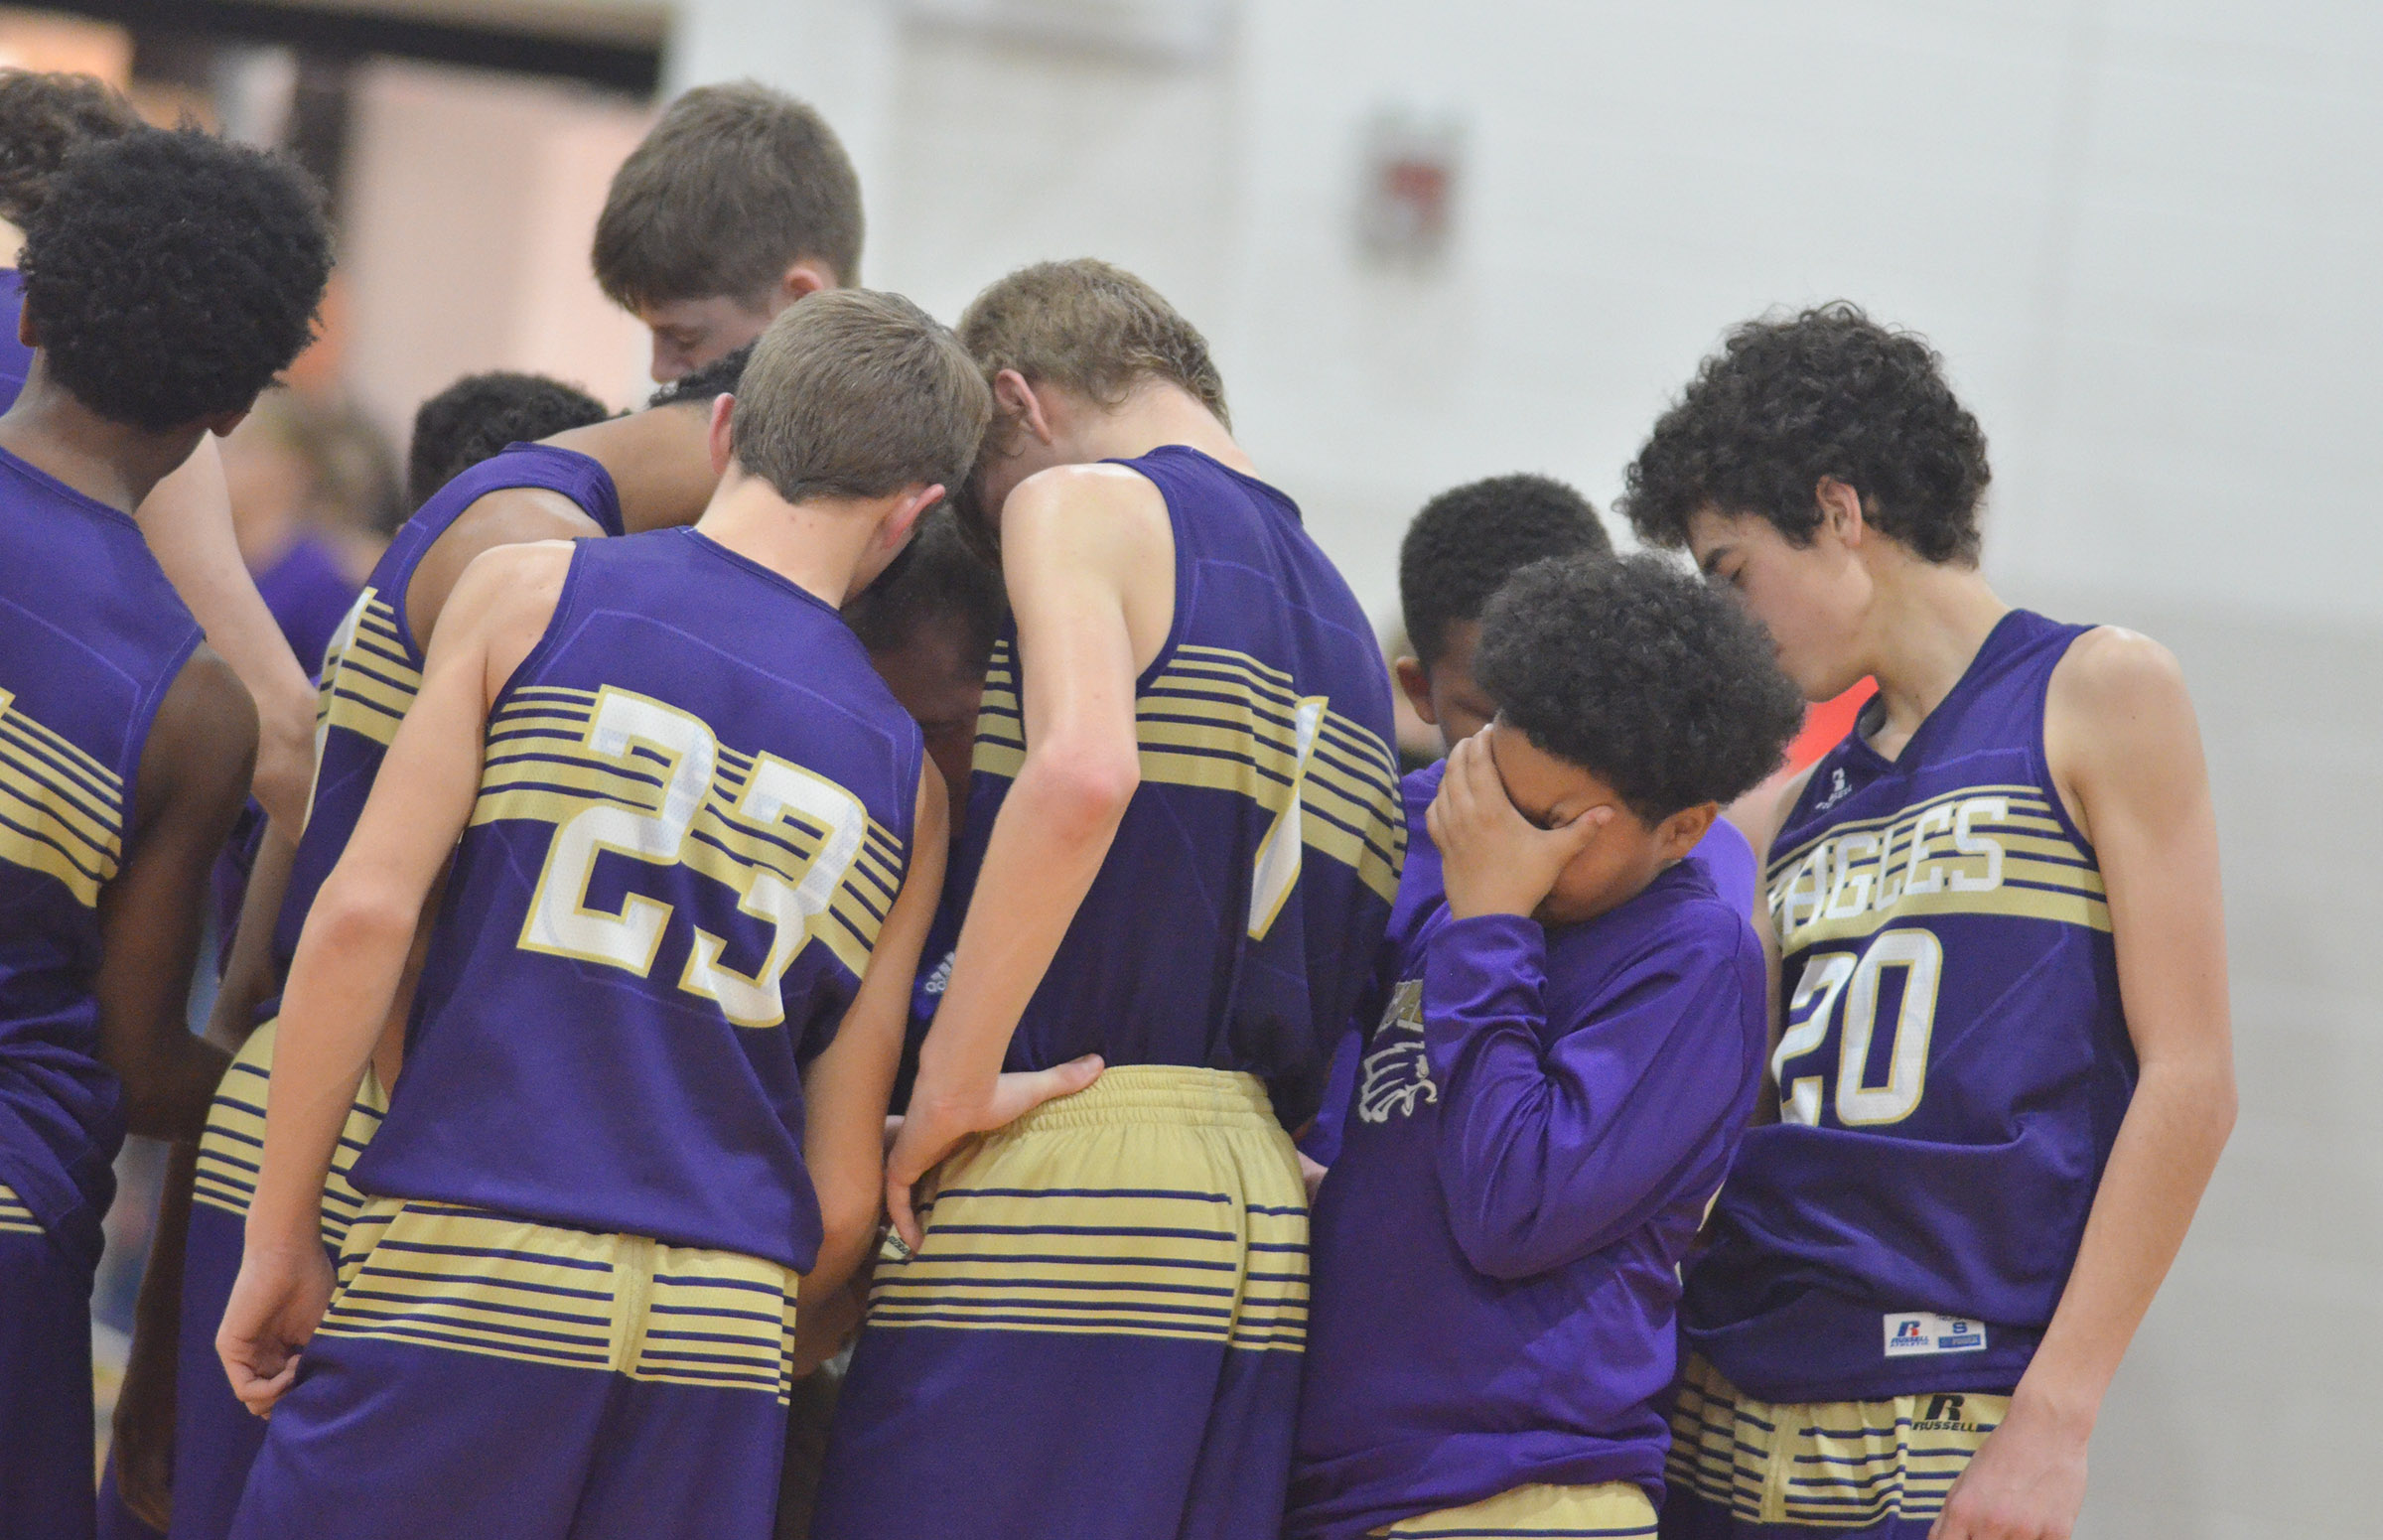 CMS boys' basketball players pray after their game.